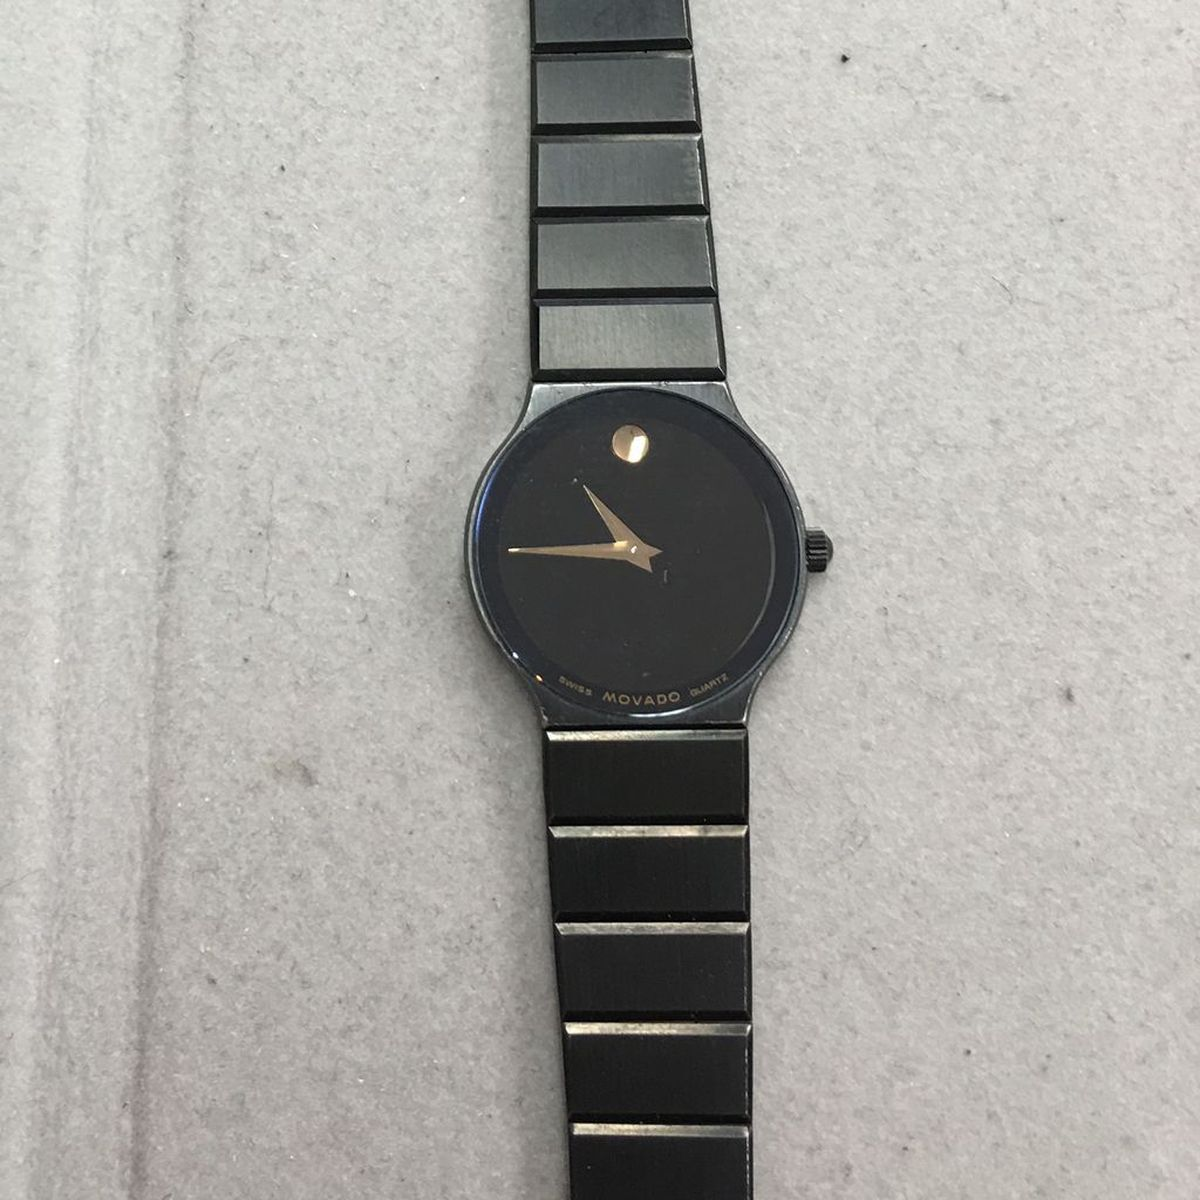 The Best Movado Watch for Men and Women